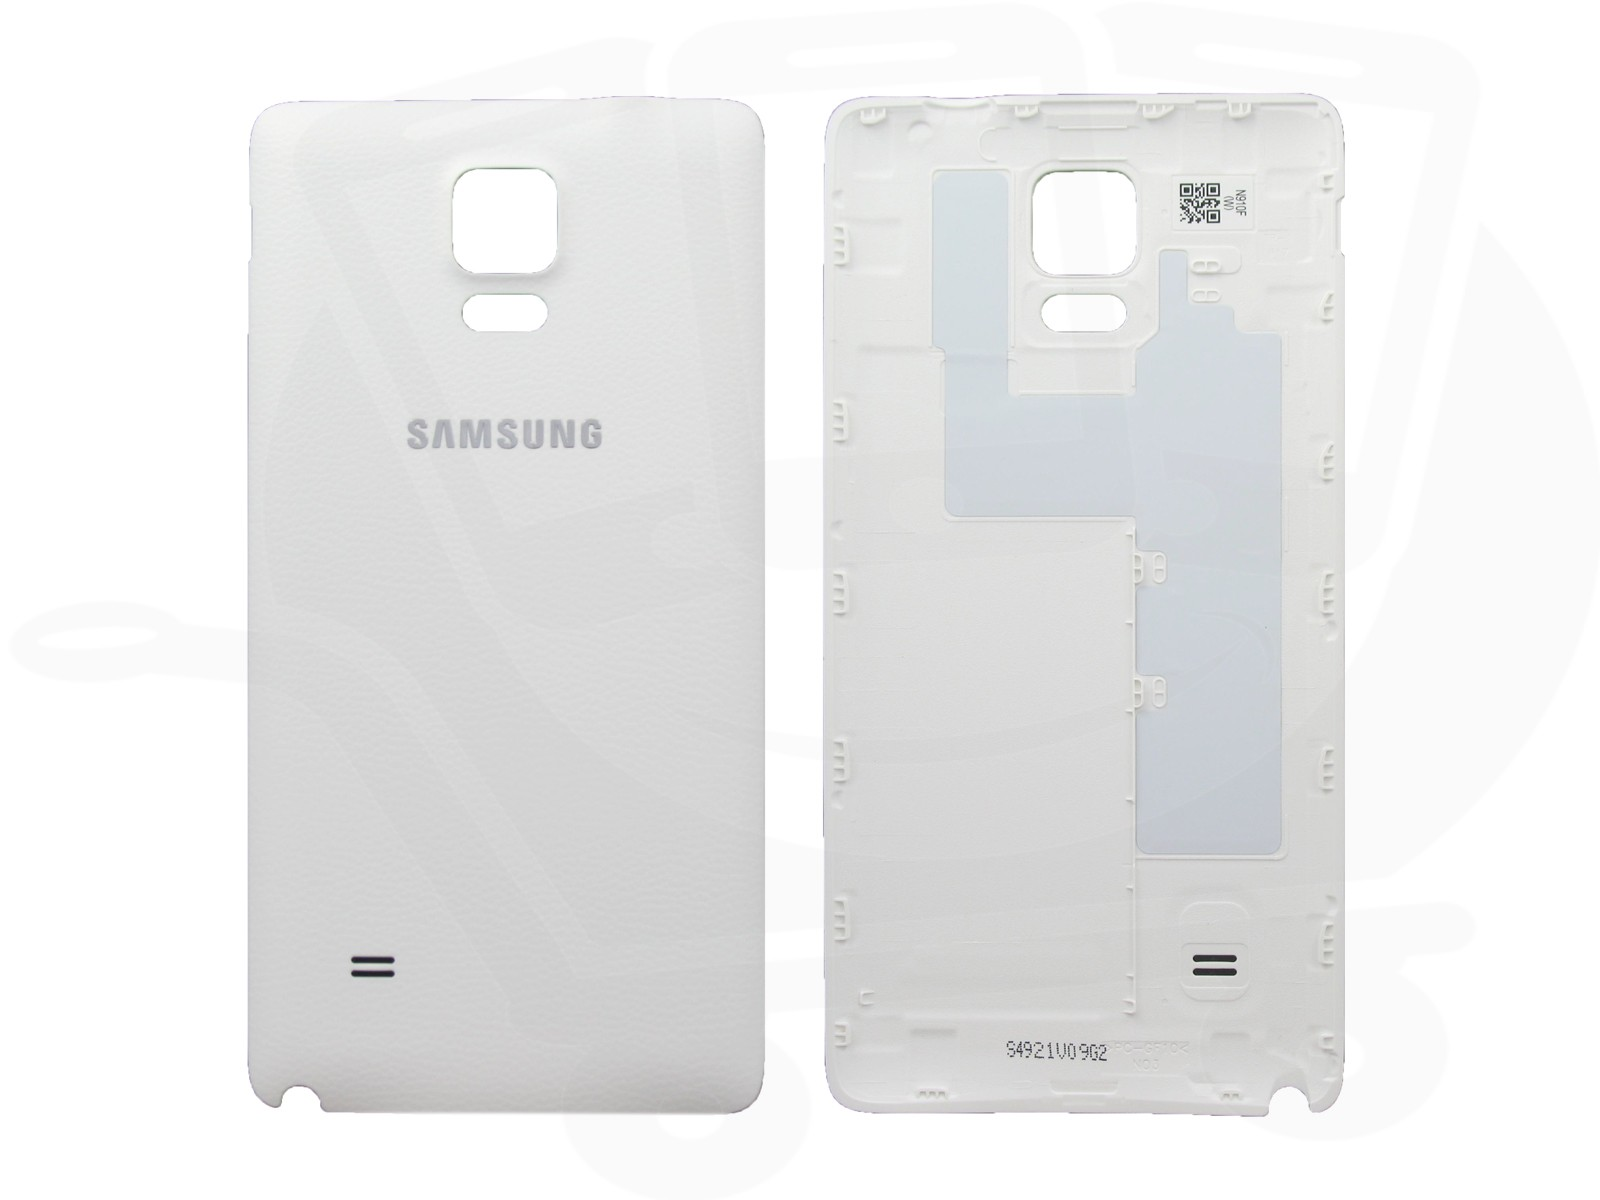 genuine samsung n910 galaxy note 4 white battery cover gh98 34209a. Black Bedroom Furniture Sets. Home Design Ideas